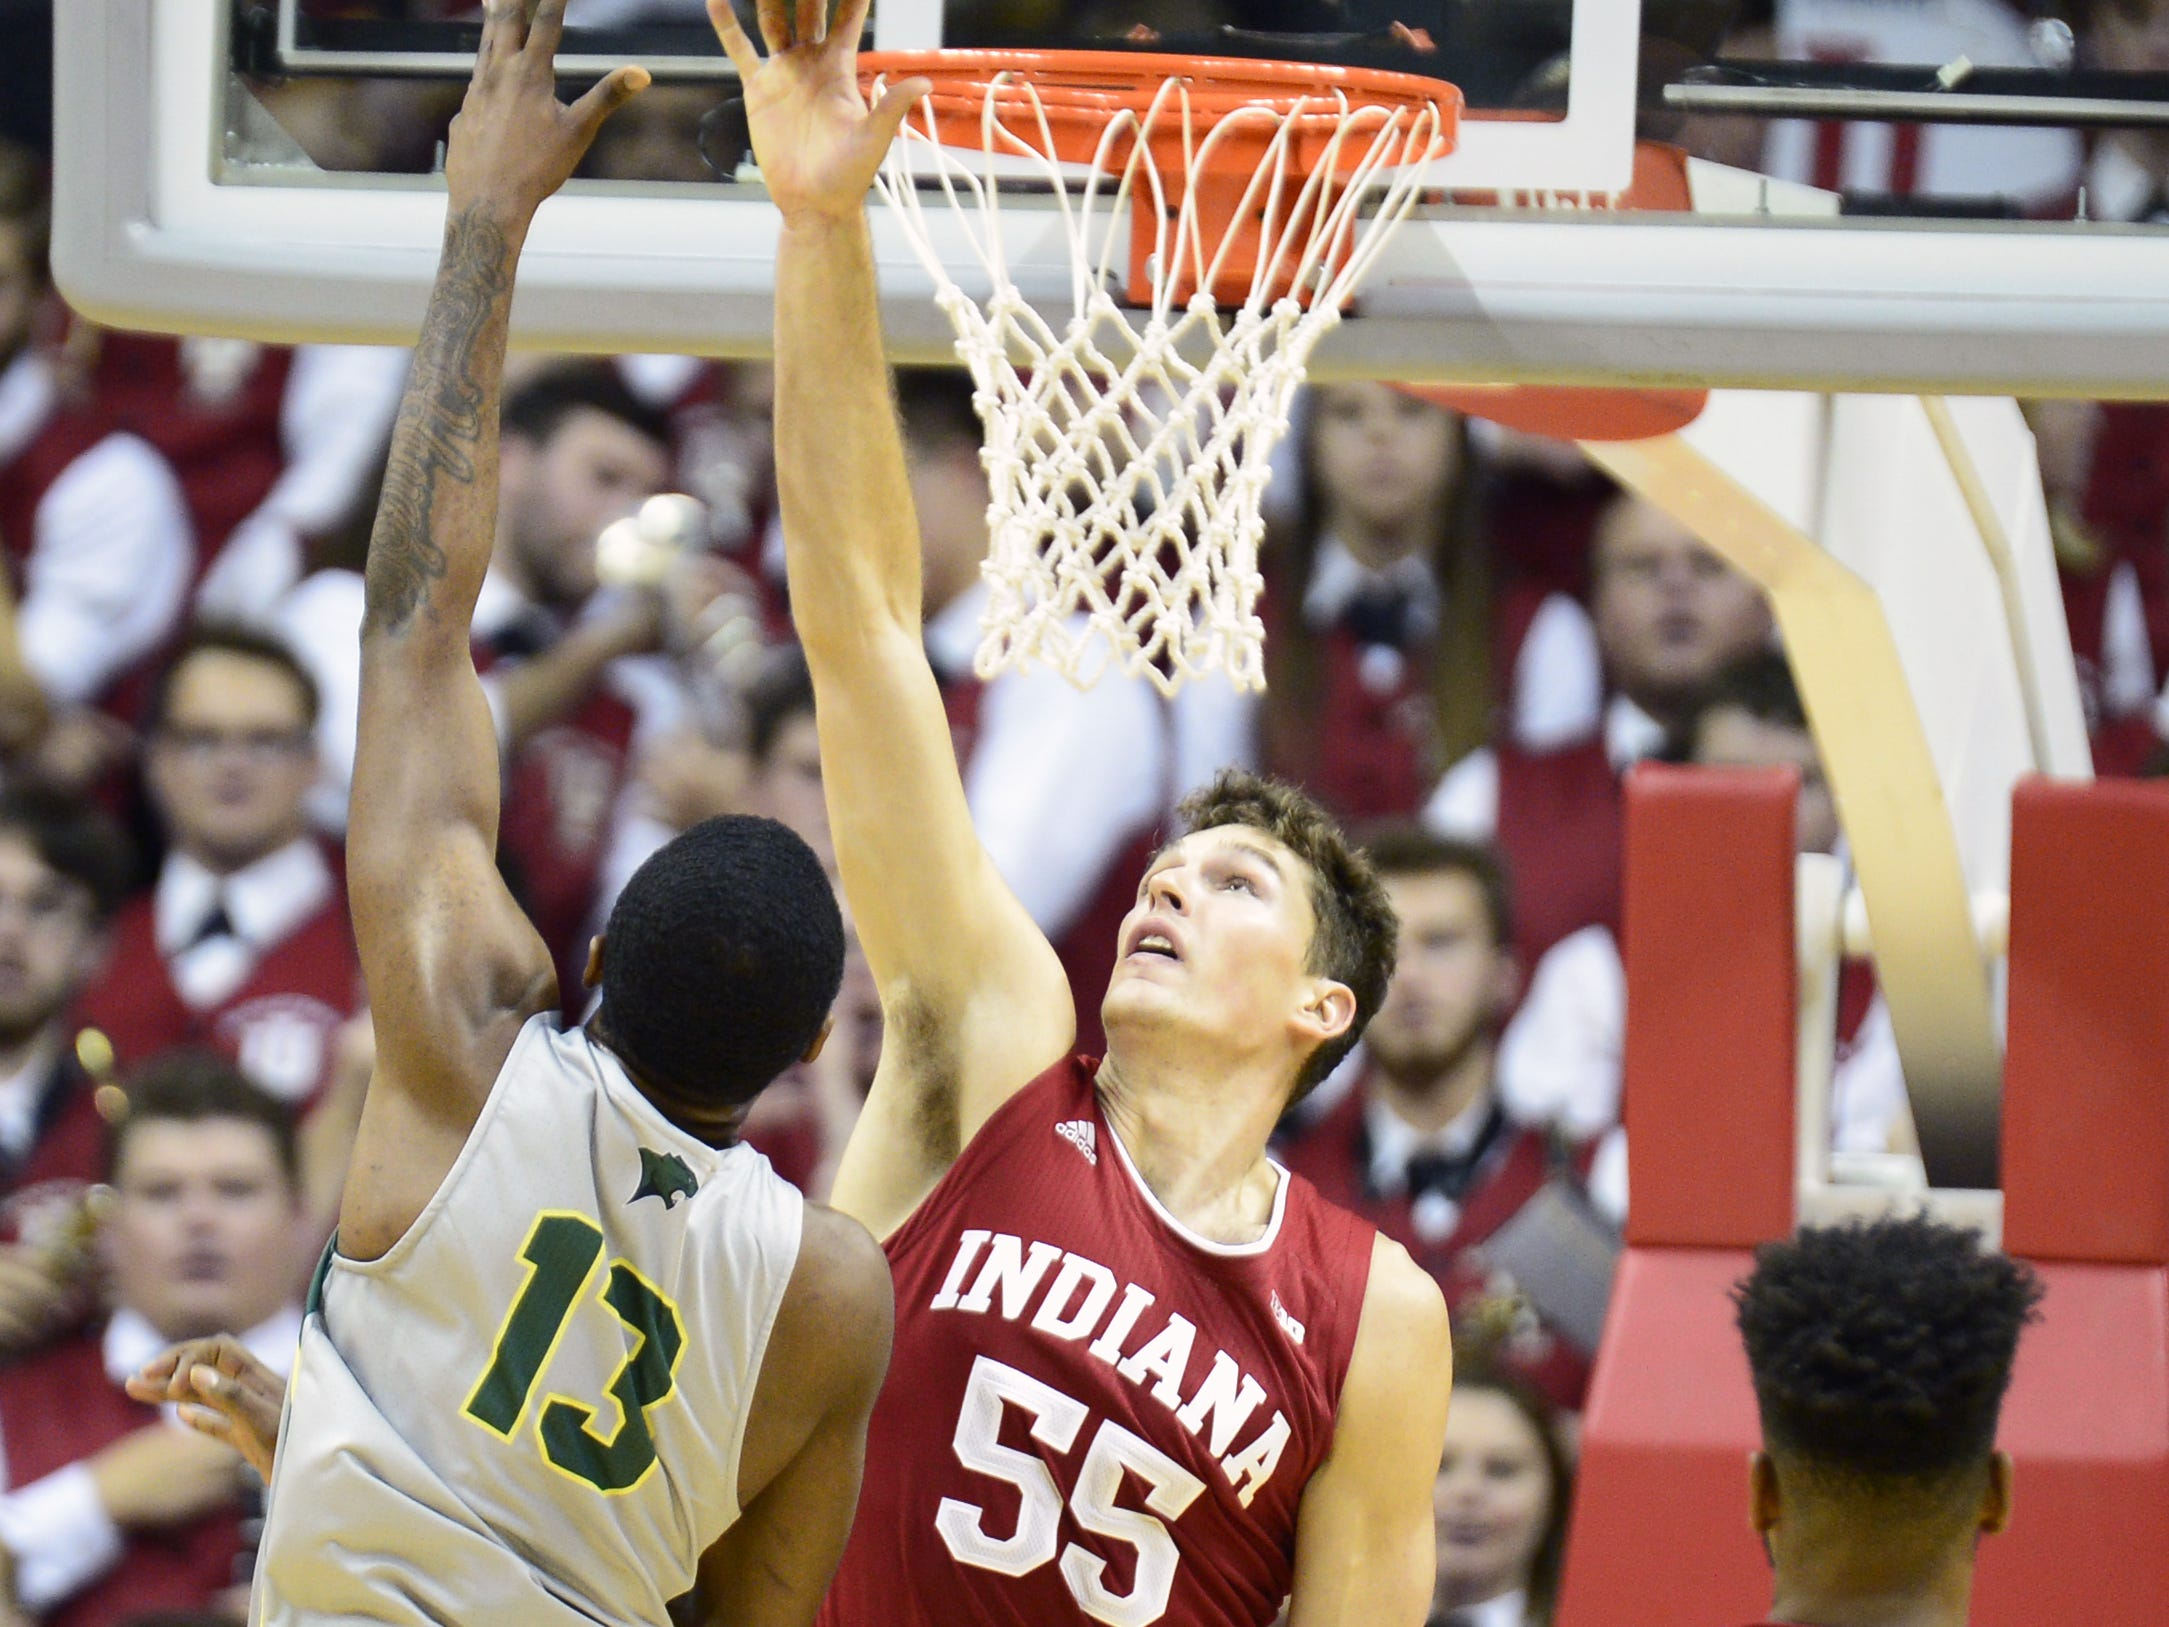 Indiana Hoosiers forward Evan Fitzner (55) blocks a shot during the game against Chicago State at Simon Skjodt Assembly Hall in Bloomington, Ind., on Tuesday, Nov. 6, 2018.